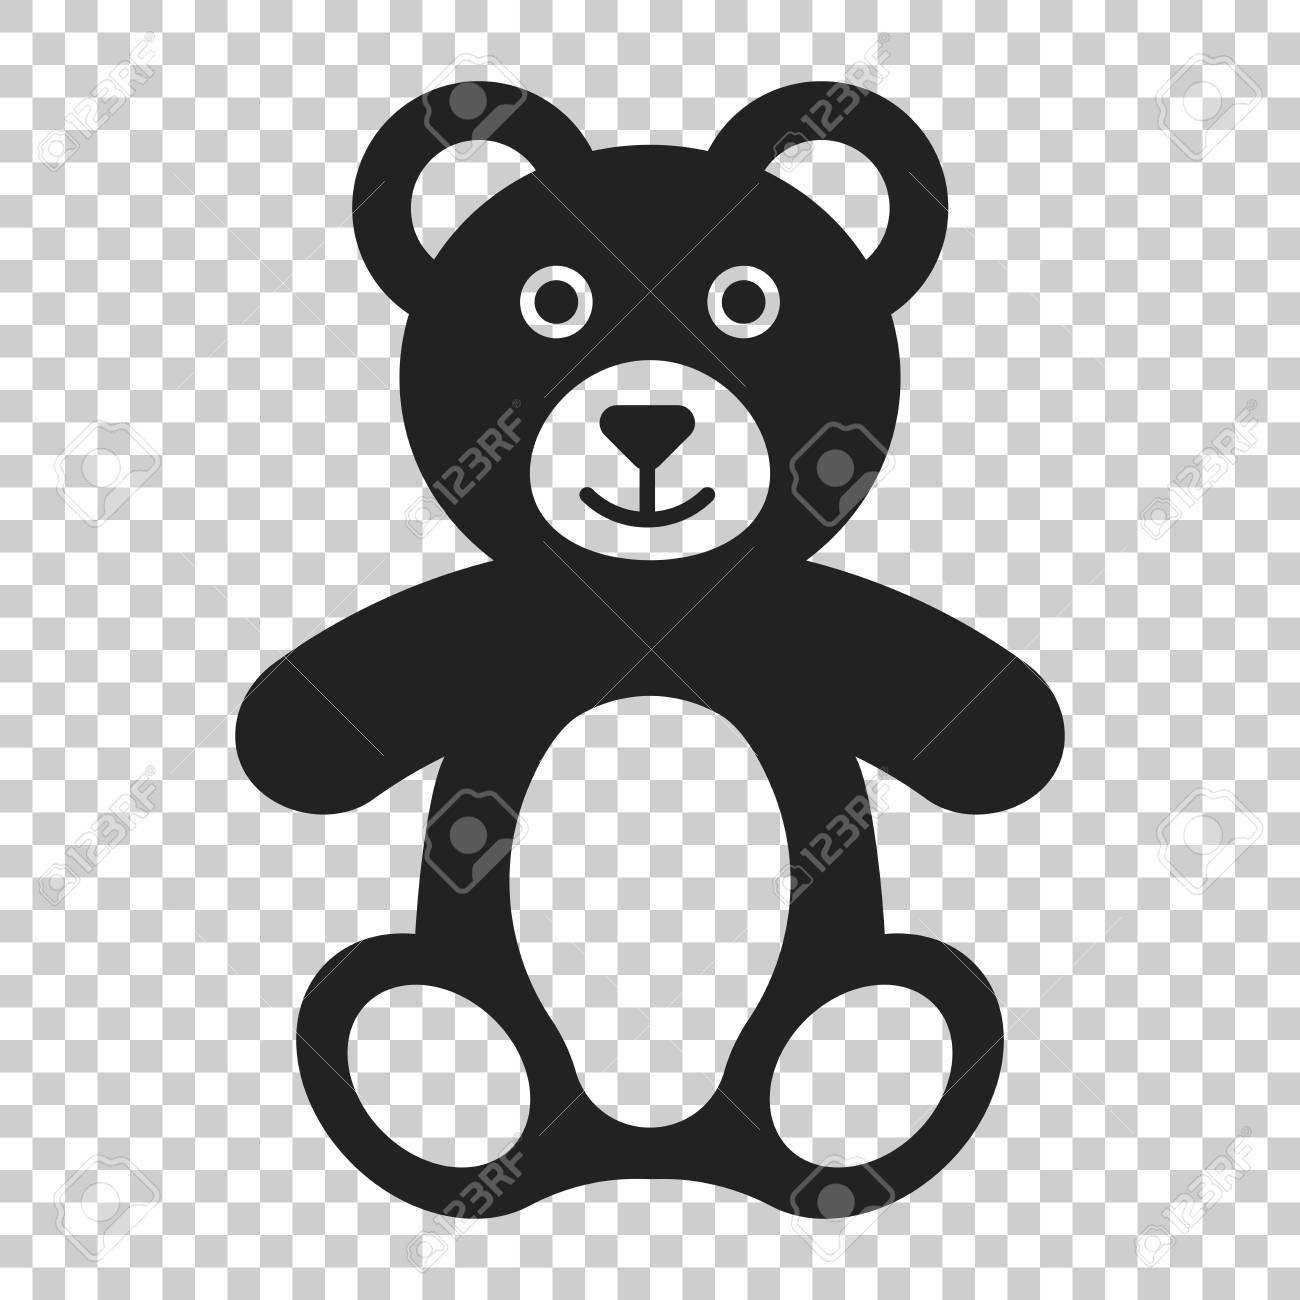 teddy bear plush toy icon vector illustration on isolated transparent royalty free cliparts vectors and stock illustration image 100764863 teddy bear plush toy icon vector illustration on isolated transparent